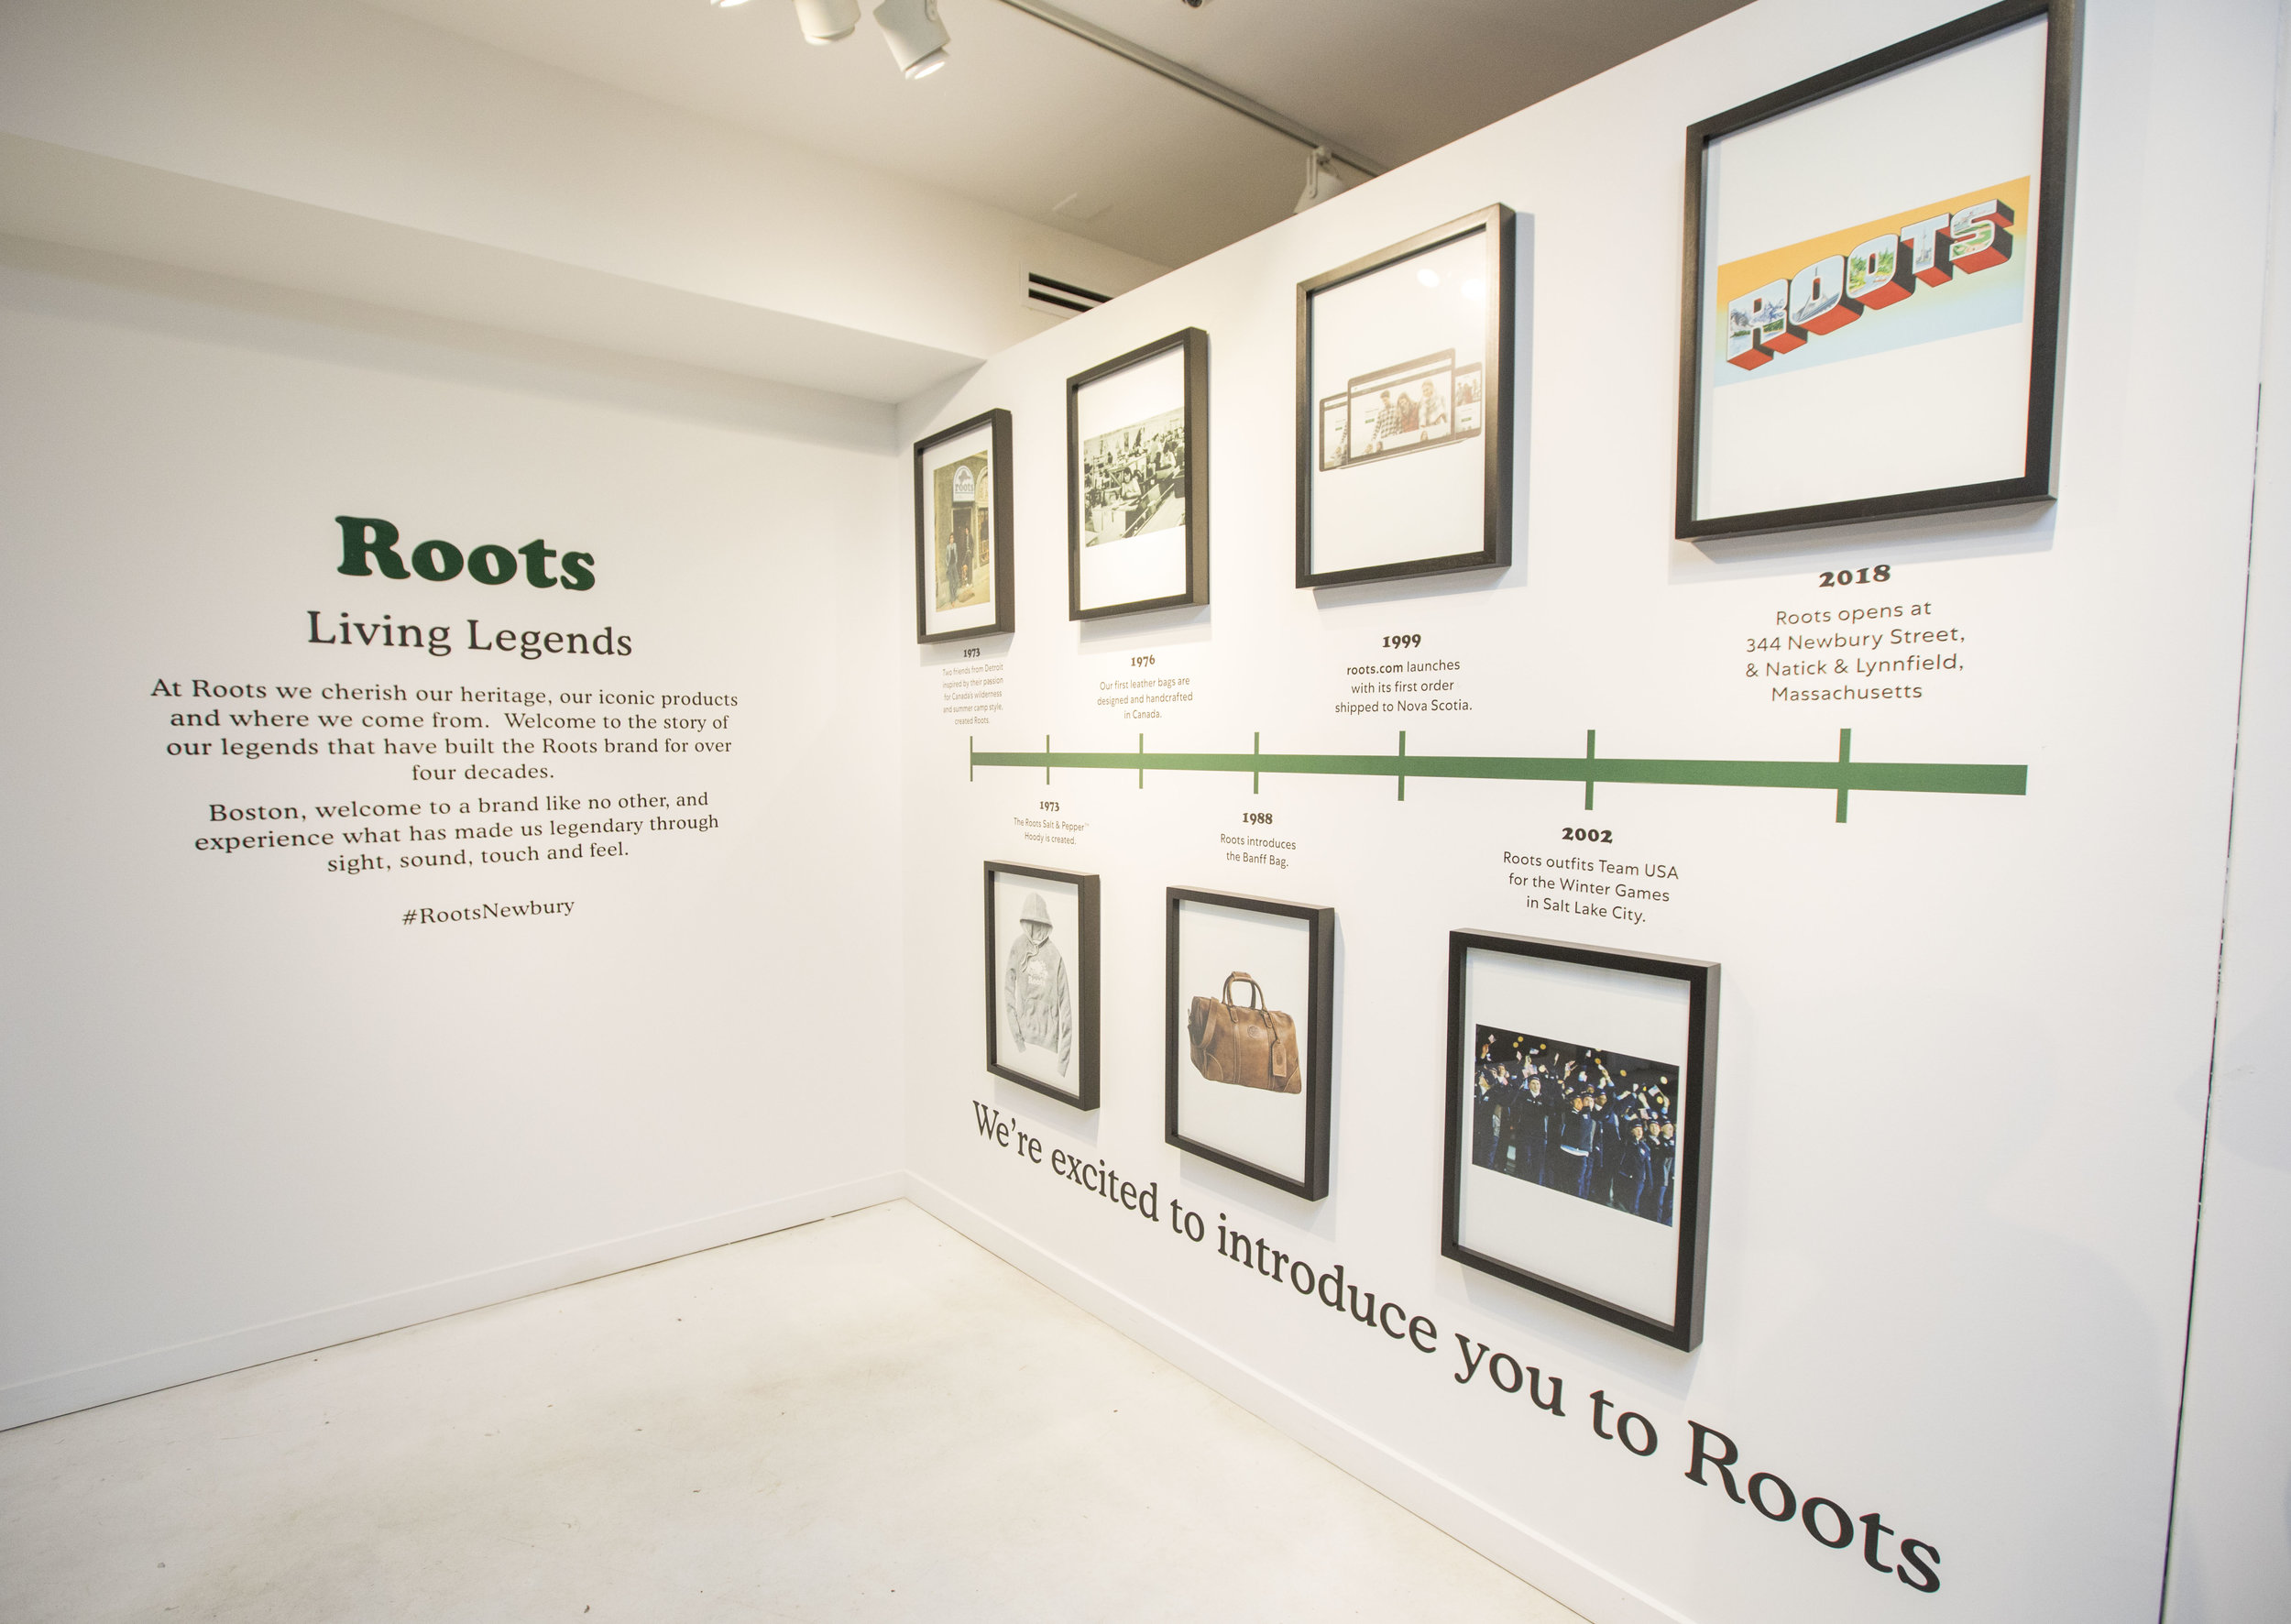 Roots brand history and timeline, at Roots Legends on Newbury.